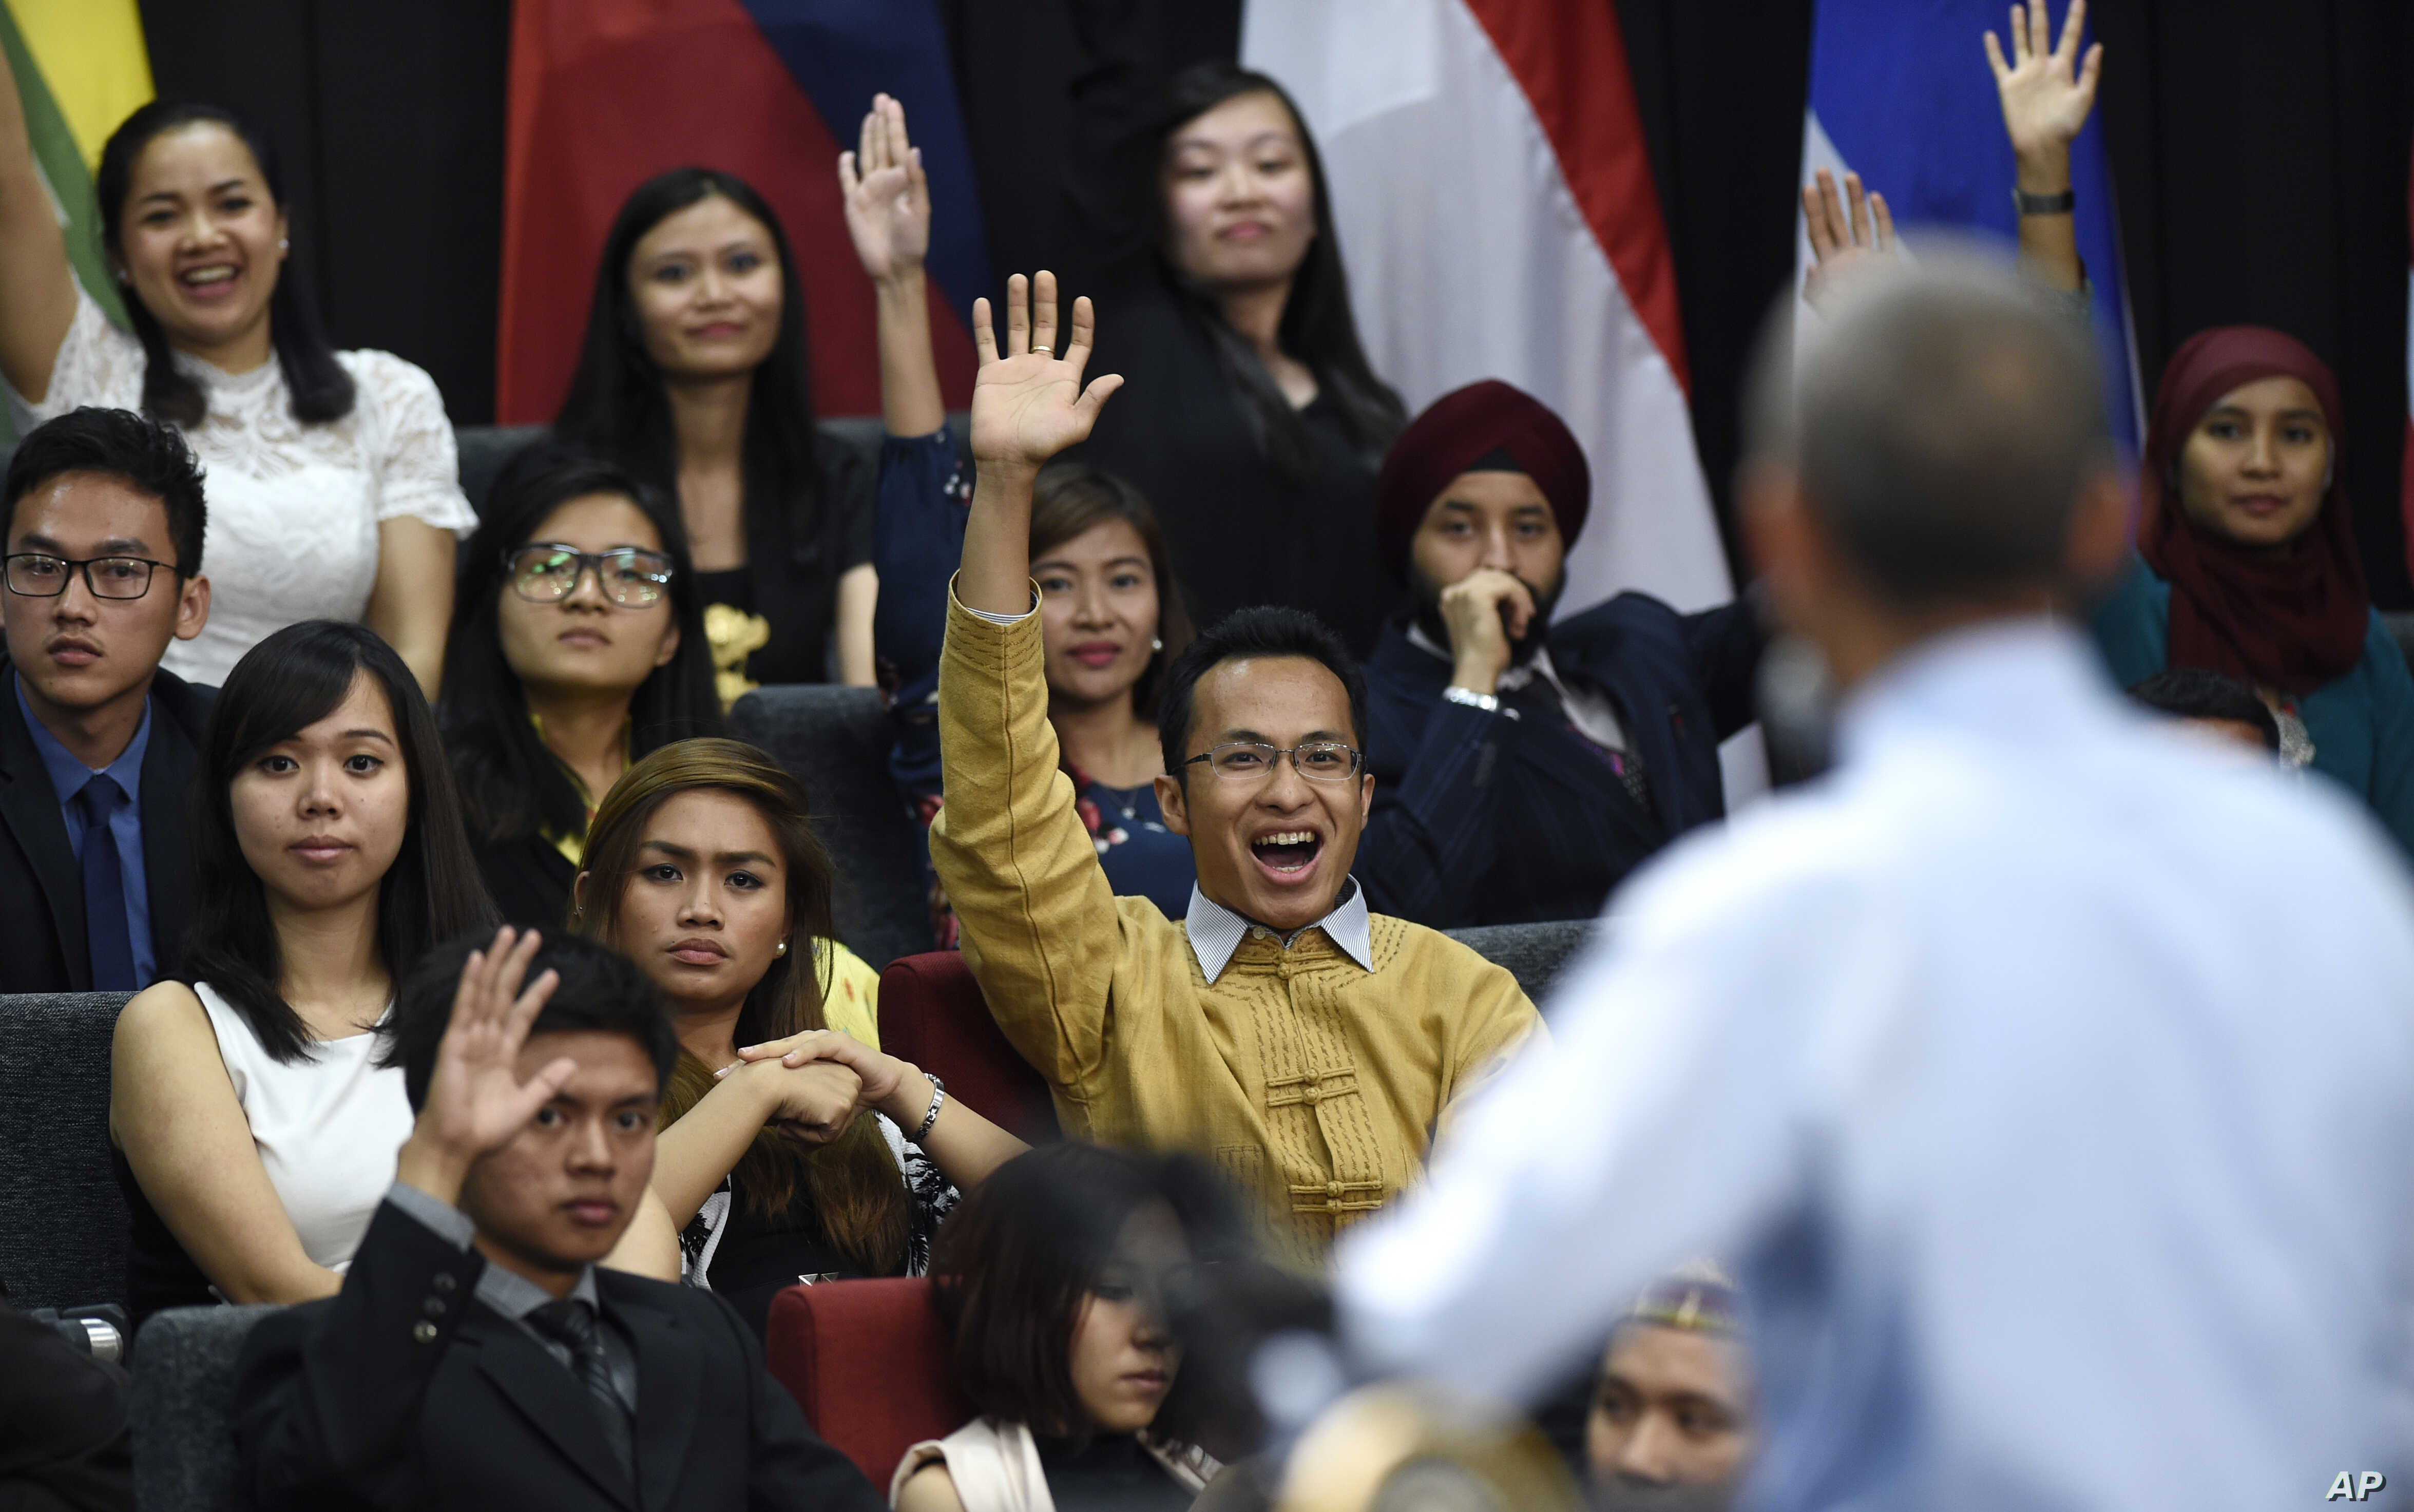 Audience members raise their hands in hopes of asking U.S. President Barack Obama a question as he speaks at the Young Southeast Asian Leaders Initiative (YSEALI) town hall at Taylor's University in Kuala Lumpur, Malaysia, Nov. 20, 2015.